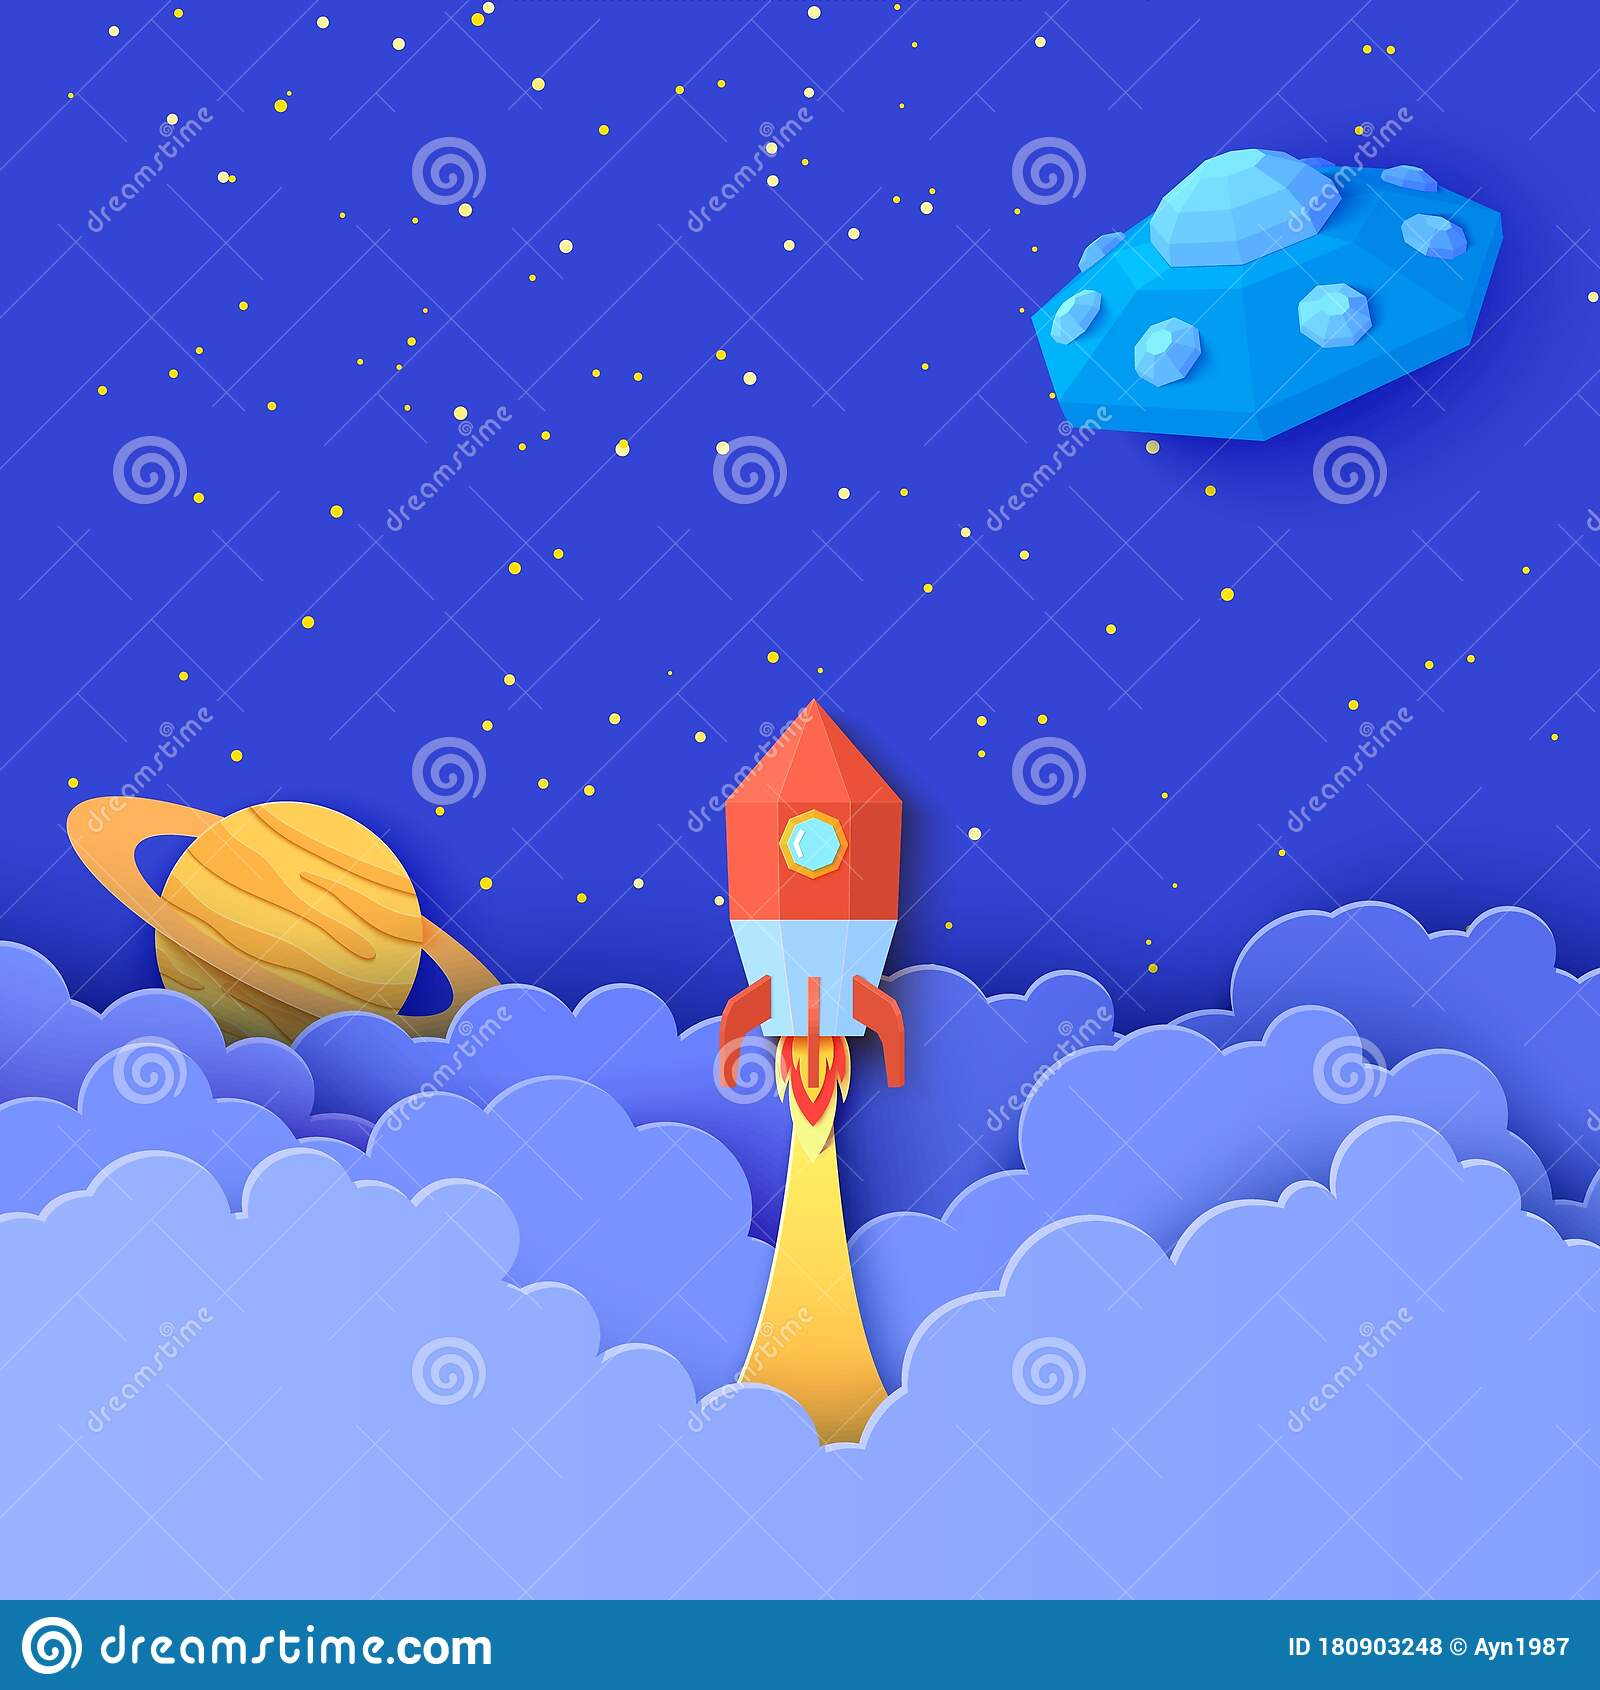 Red Rocket Launch In Space In Paper Cut Style Galaxy Universe Landscape 3d Craft Background With Flying Saucer In Stock Vector Illustration Of Education Layered 180903248